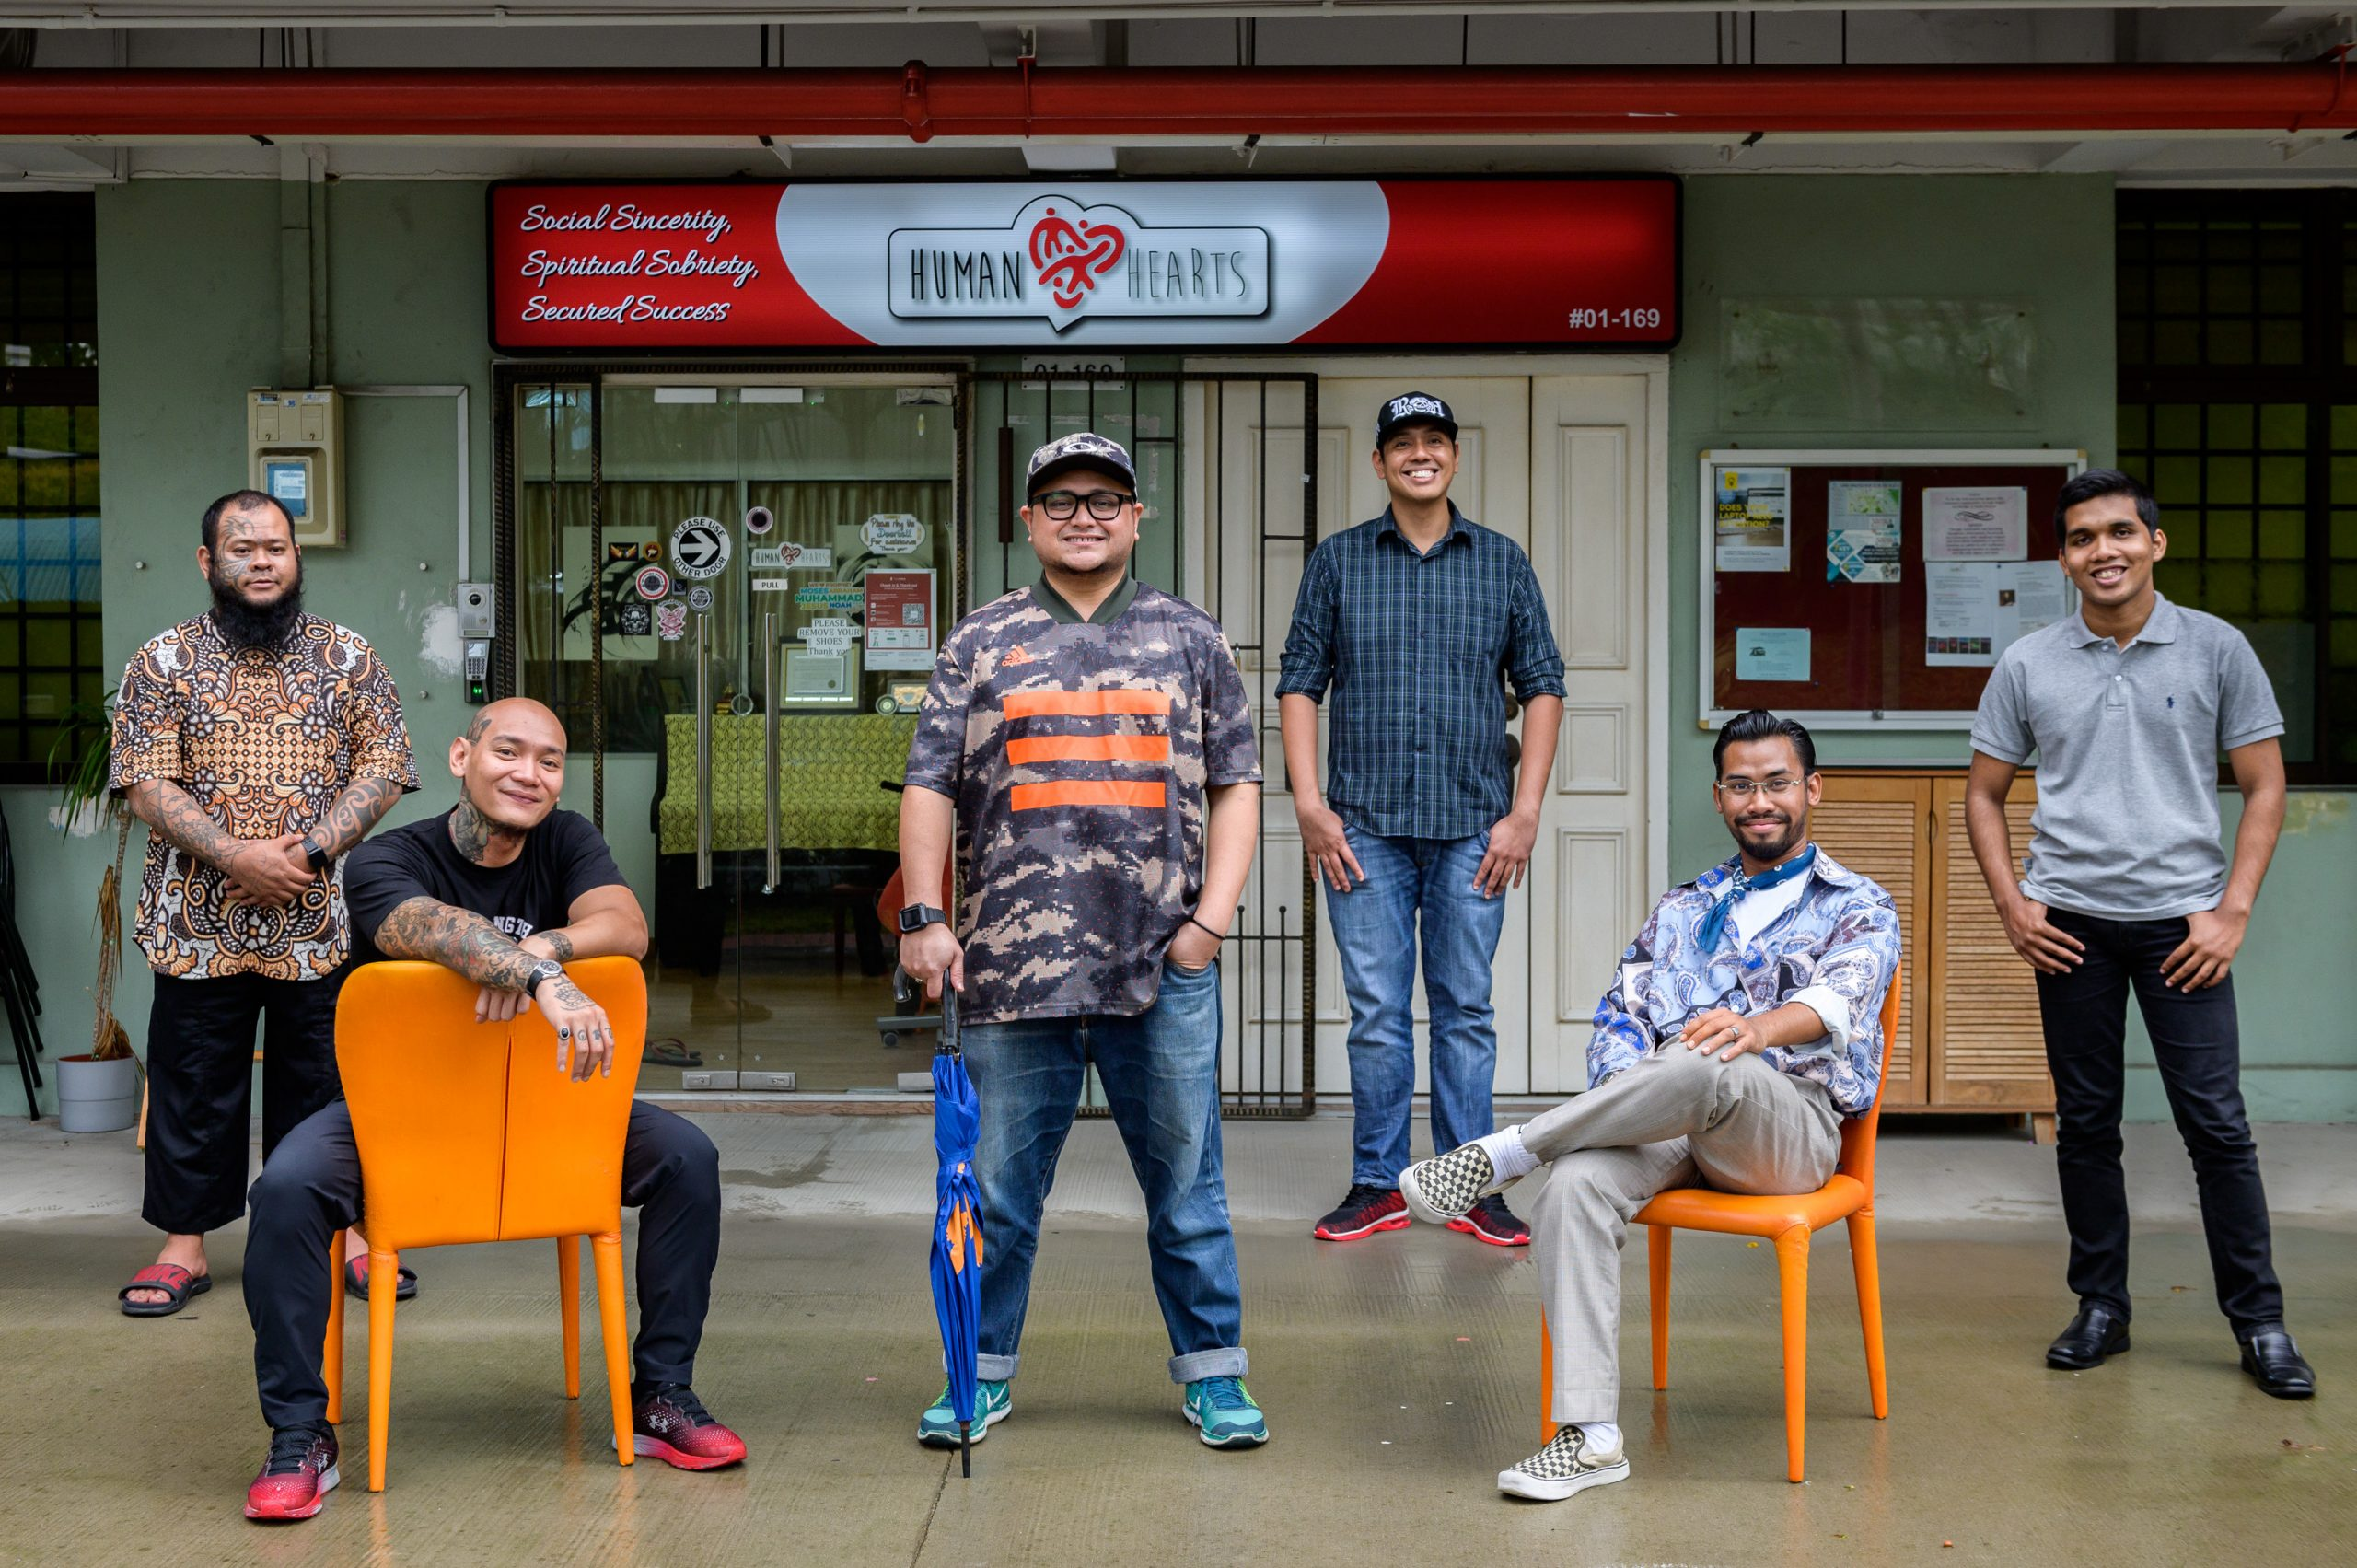 Members of the cofounding team of Human HeartS are all reformers. From left to right: Mohd Fadhil Husin, Muhammad Andyn Abdul Kadir, Firdaus Abdul Hamid, Mohamad Shaifudin Md Yusof, Taufiq Yusof and Md Ali Jinnah